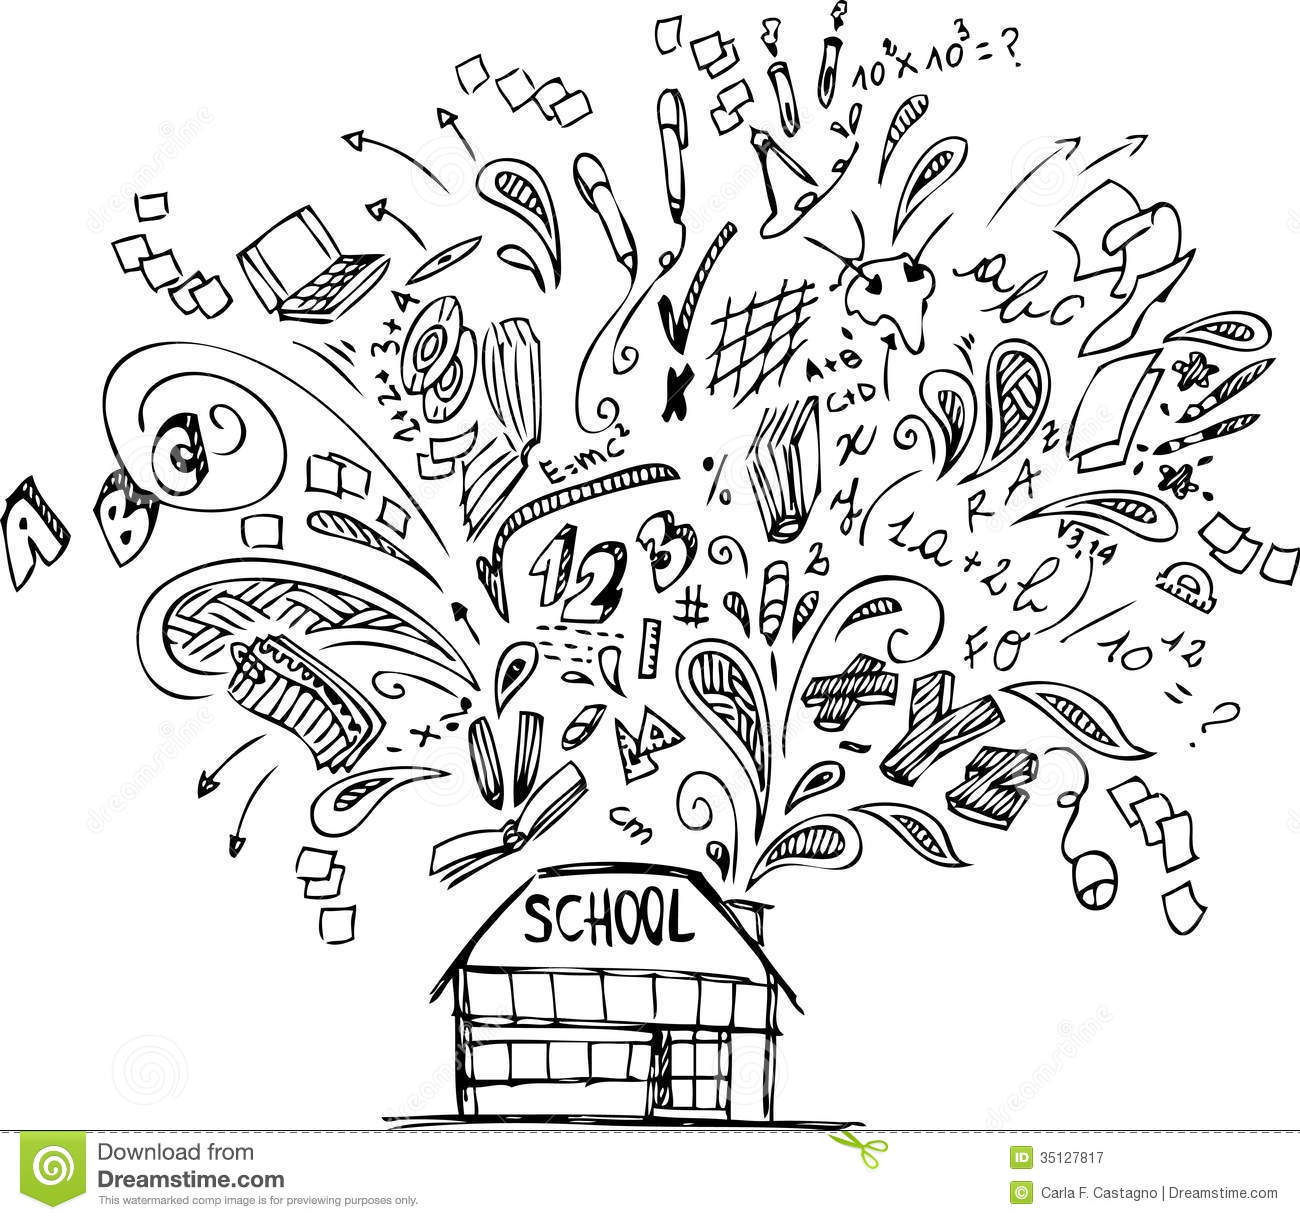 free education clipart black and white - photo #35